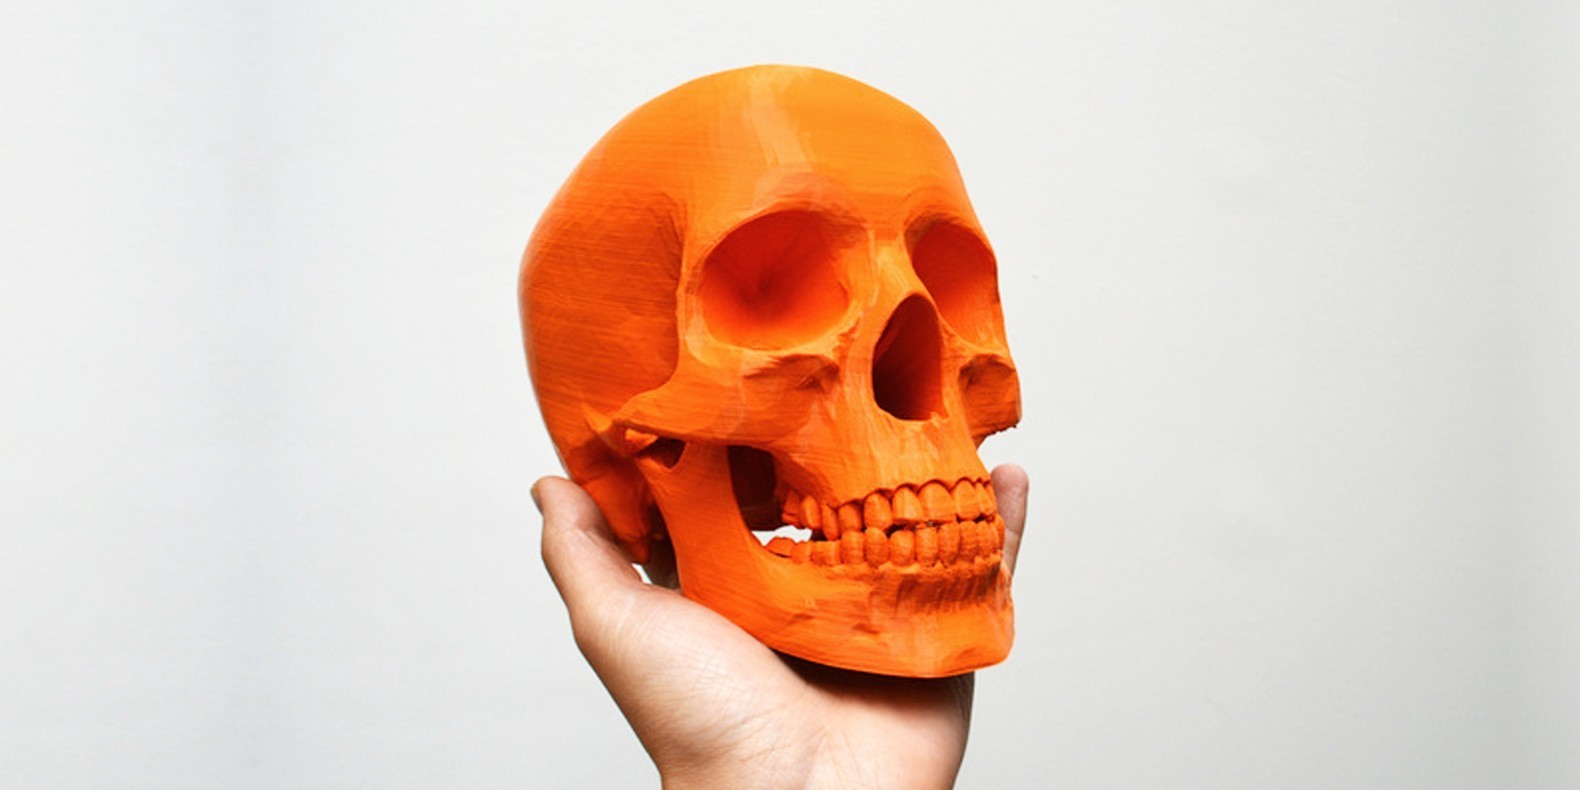 Discover in this selection of 3D models, all the best STL files of skulls